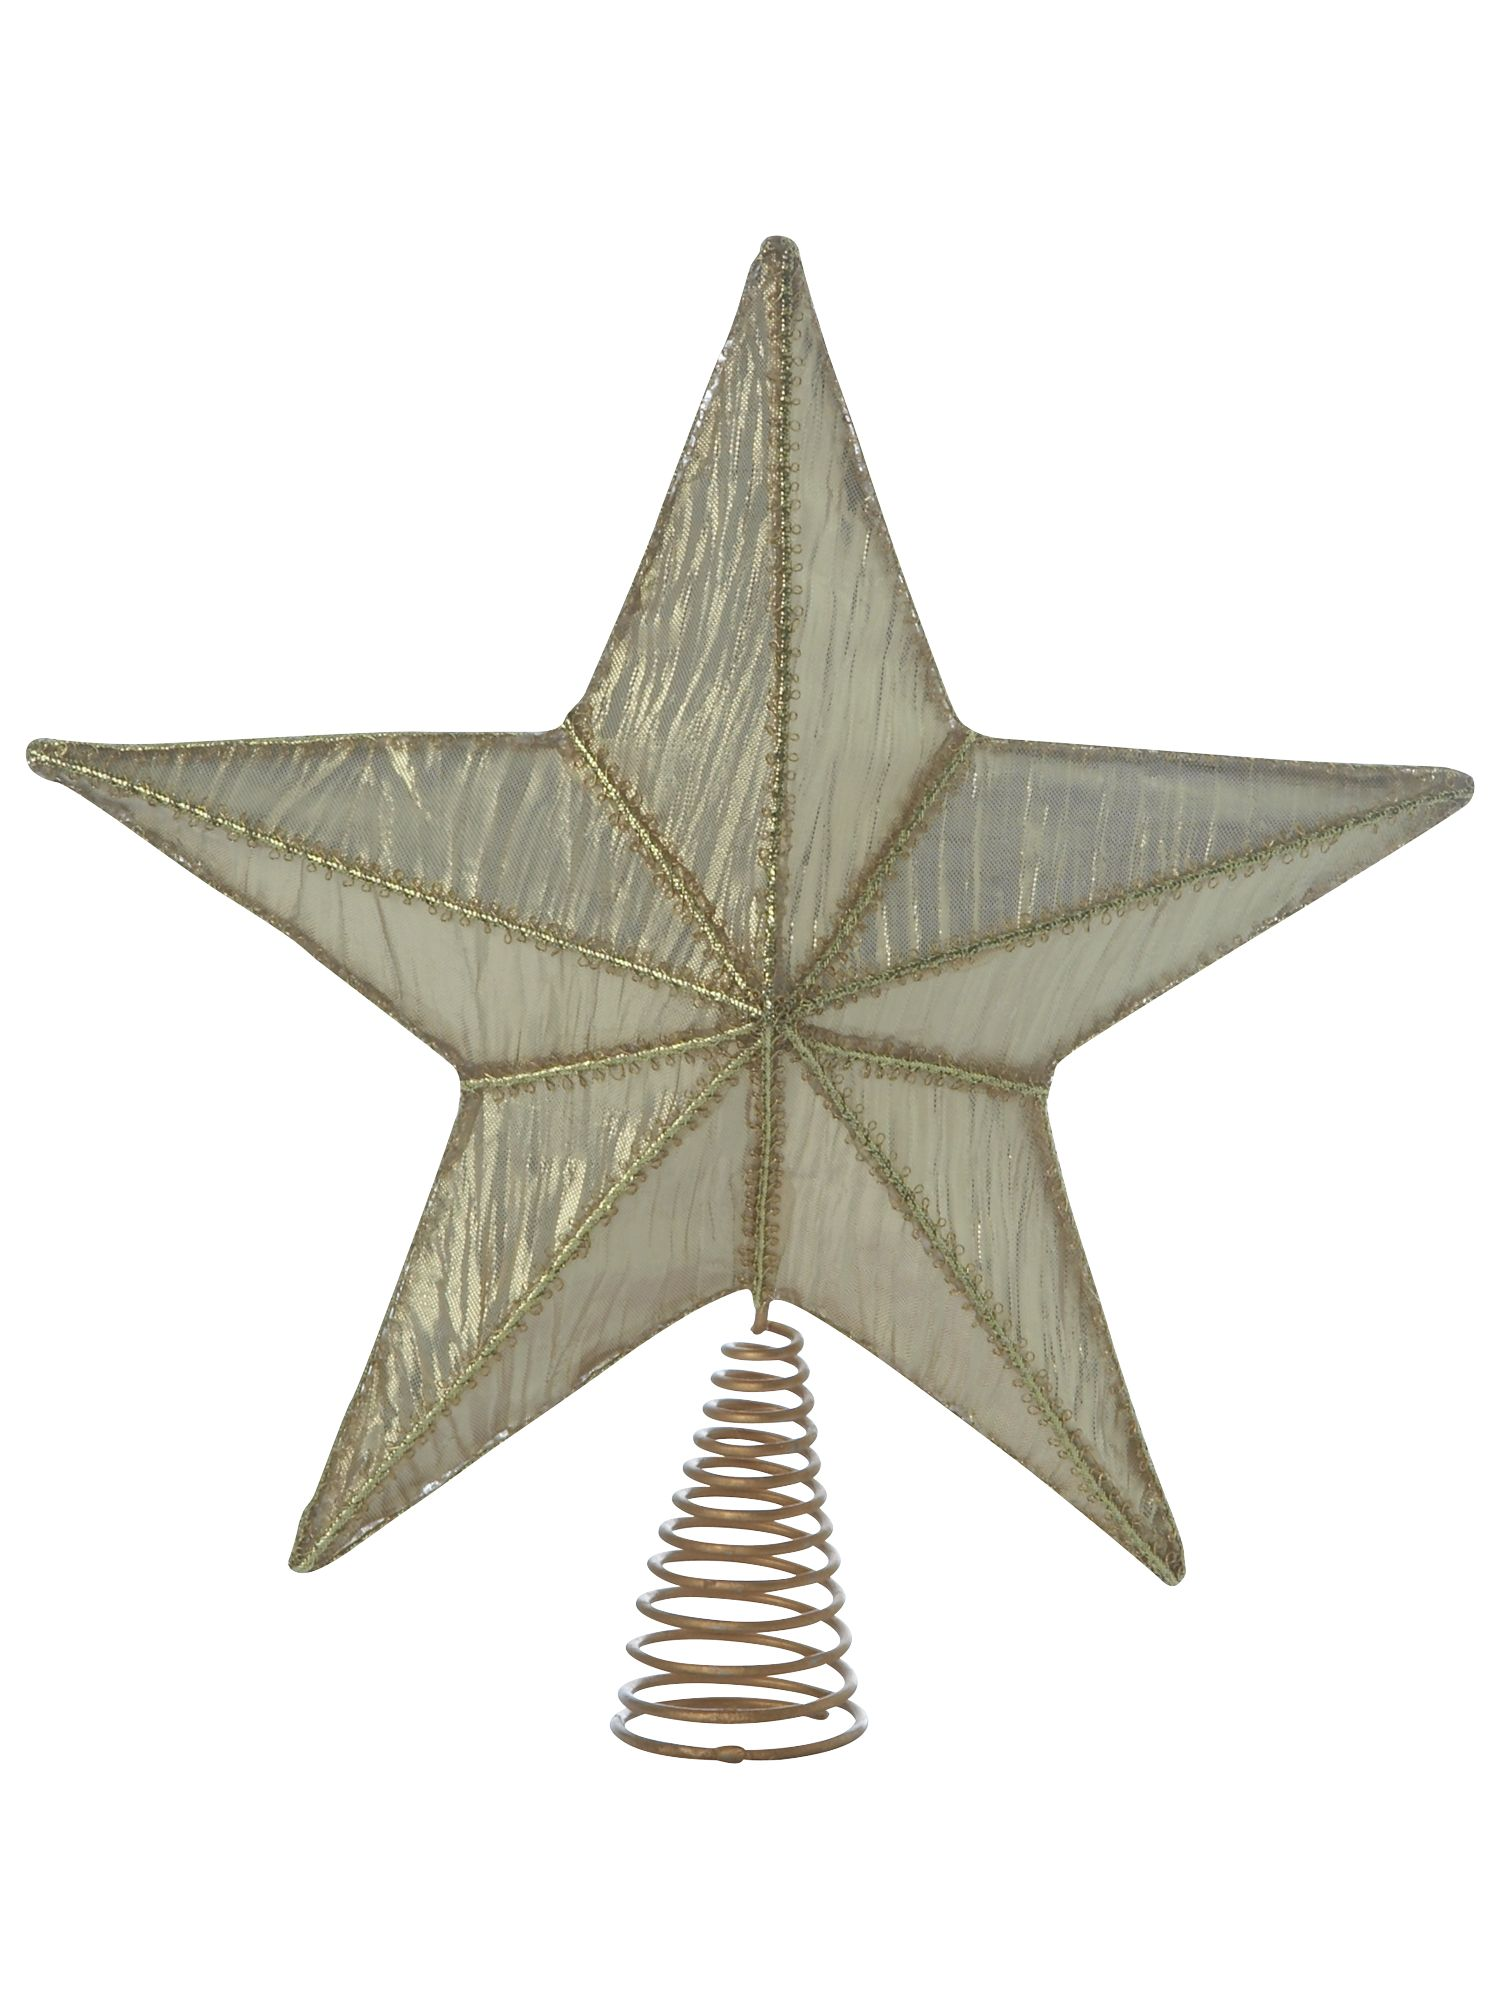 Renaissance gold tree topper